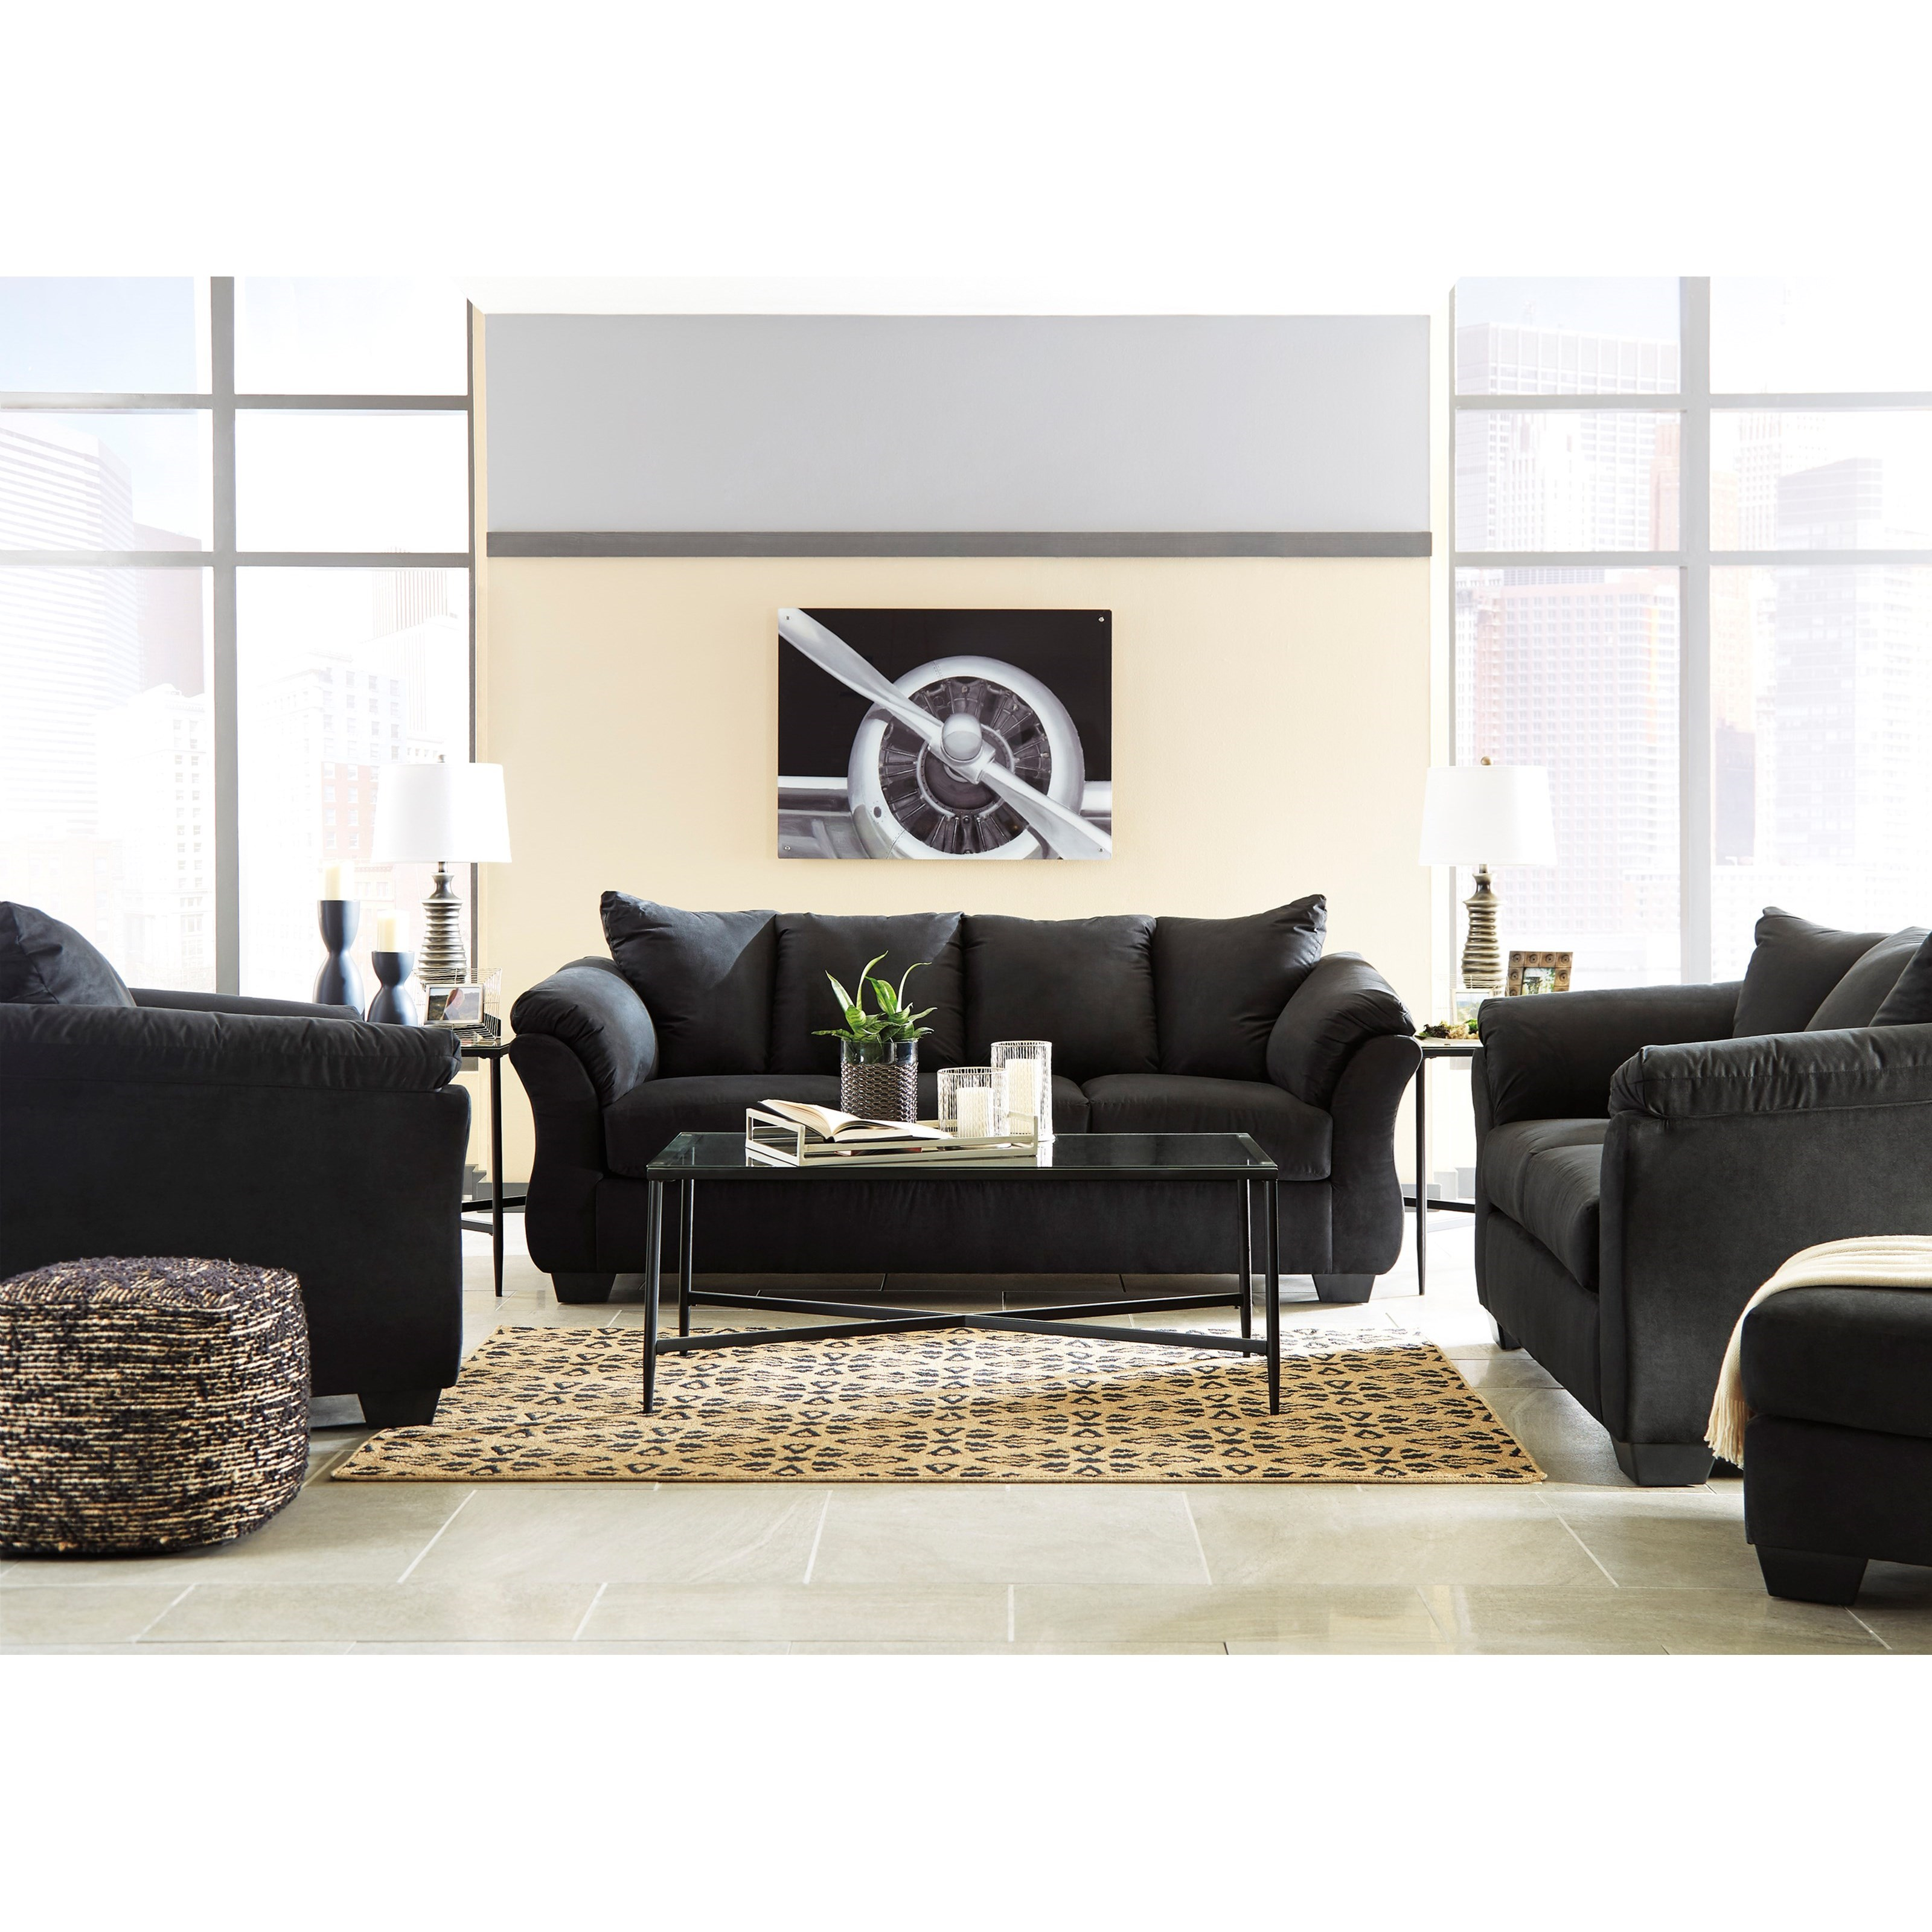 Signature Design by Ashley Darcy - Black Stationary Living Room Group - Item Number: 75008 Living Room Group 2